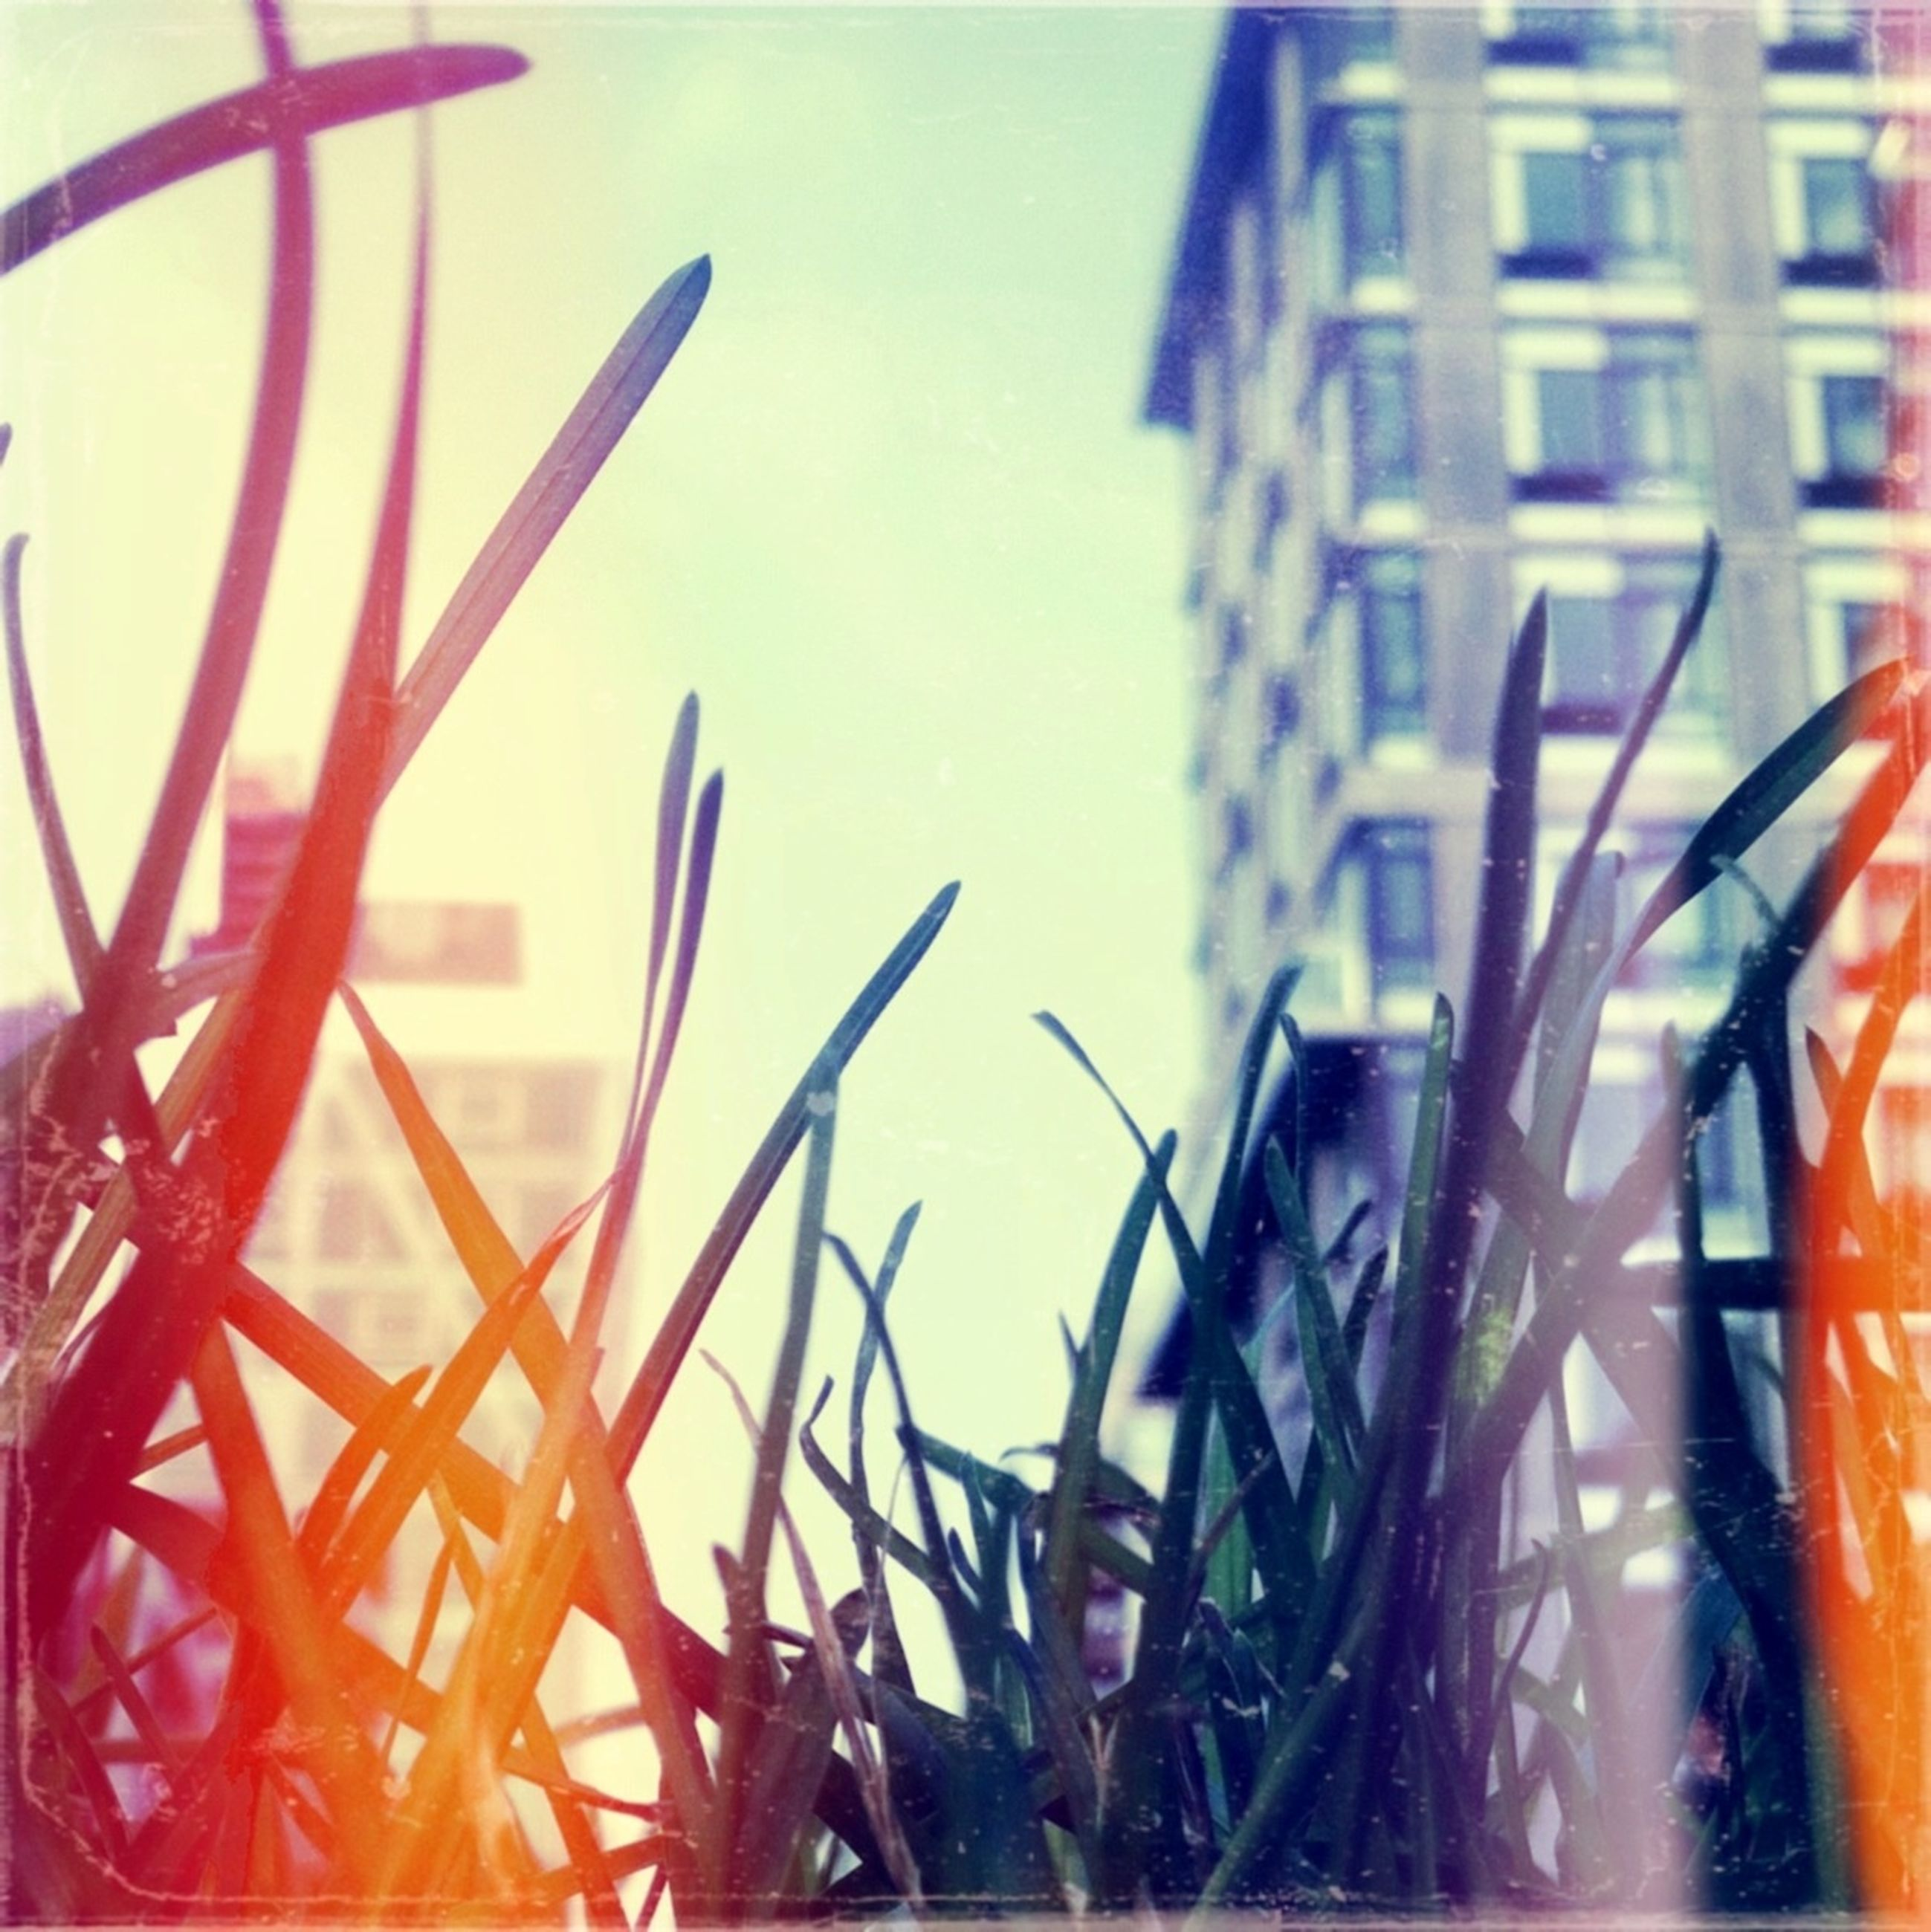 building exterior, architecture, built structure, low angle view, orange color, city, sunset, outdoors, close-up, building, no people, metal, focus on foreground, sky, day, clear sky, dusk, sunlight, metallic, growth